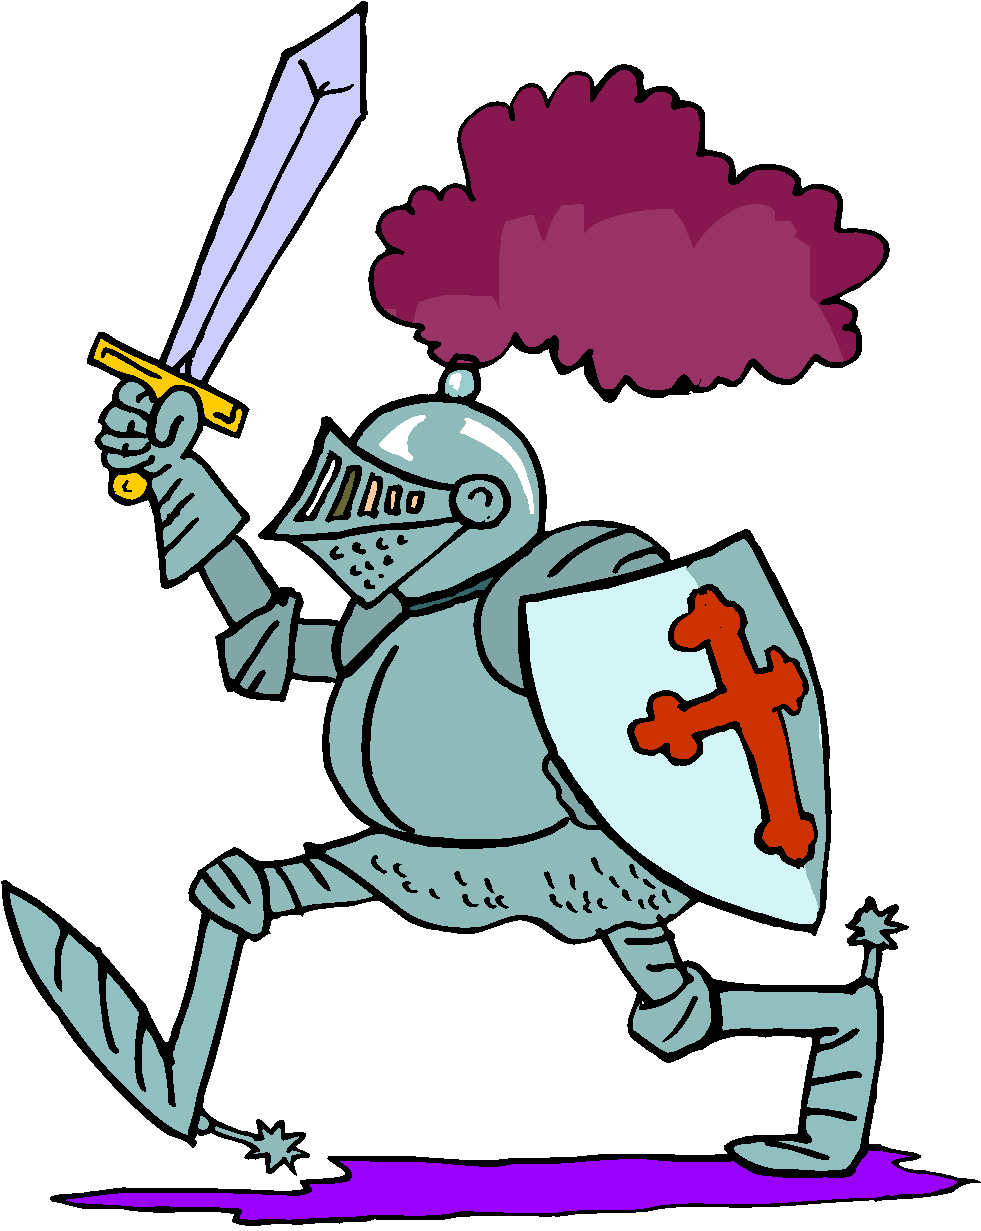 981x1231 Knight Clip Art Free Collection Download And Share Knight Clip Art